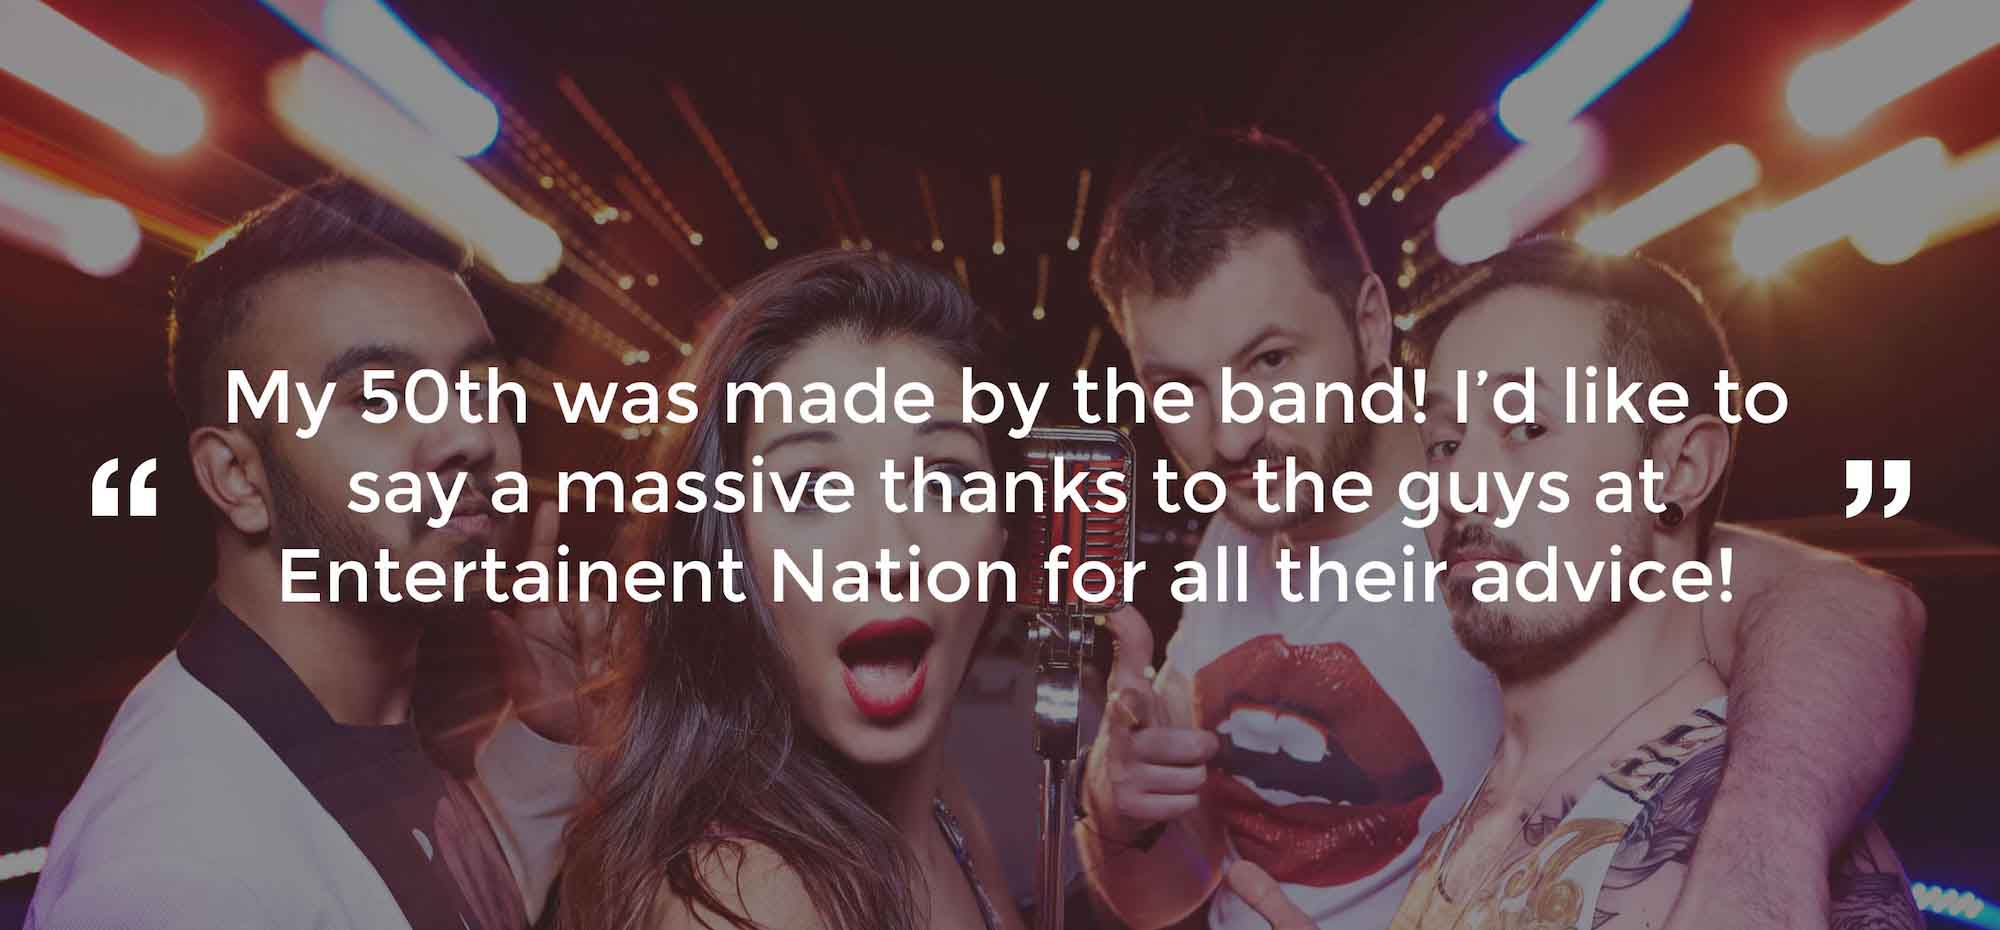 Client Review of a Party Band Gwynedd